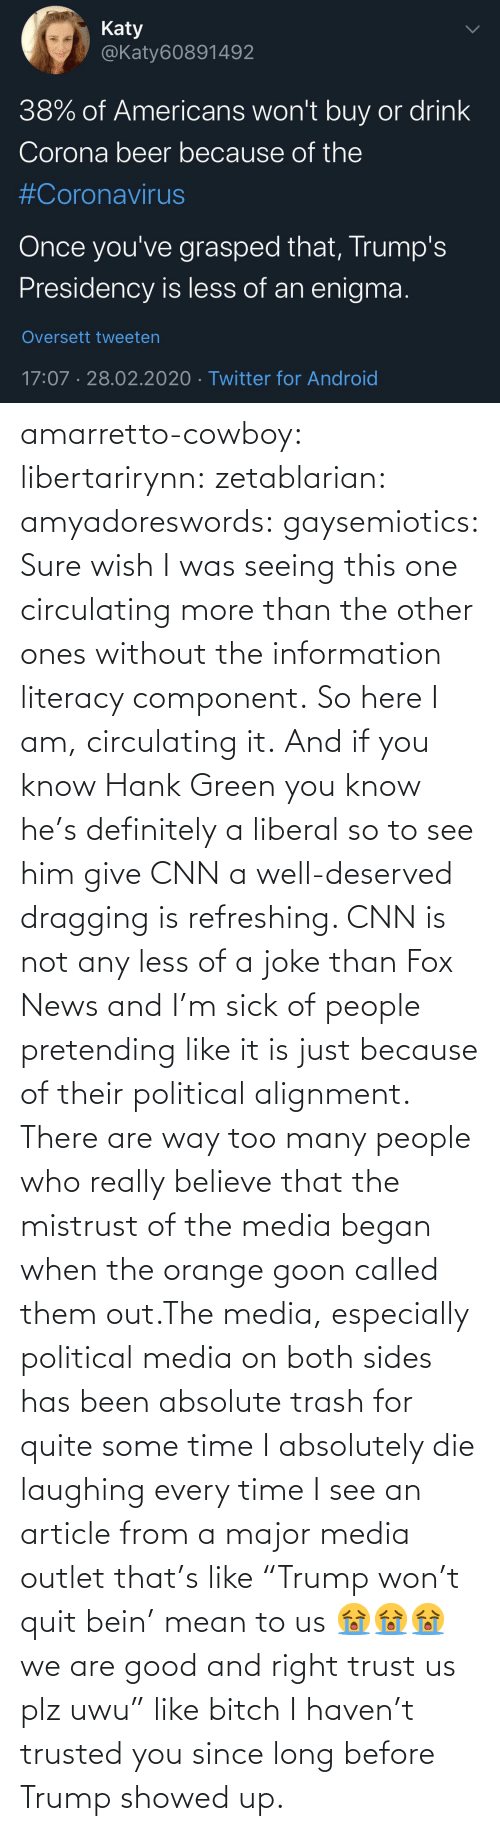 "cnn.com: amarretto-cowboy:  libertarirynn:  zetablarian:  amyadoreswords:   gaysemiotics:       Sure wish I was seeing this one circulating more than the other ones without the information literacy component. So here I am, circulating it.    And if you know Hank Green you know he's definitely a liberal so to see him give CNN a well-deserved dragging is refreshing. CNN is not any less of a joke than Fox News and I'm sick of people pretending like it is just because of their political alignment.   There are way too many people who really believe that the mistrust of the media began when the orange goon called them out.The media, especially political media on both sides has been absolute trash for quite some time   I absolutely die laughing every time I see an article from a major media outlet that's like ""Trump won't quit bein' mean to us 😭😭😭 we are good and right trust us plz uwu"" like bitch I haven't trusted you since long before Trump showed up."